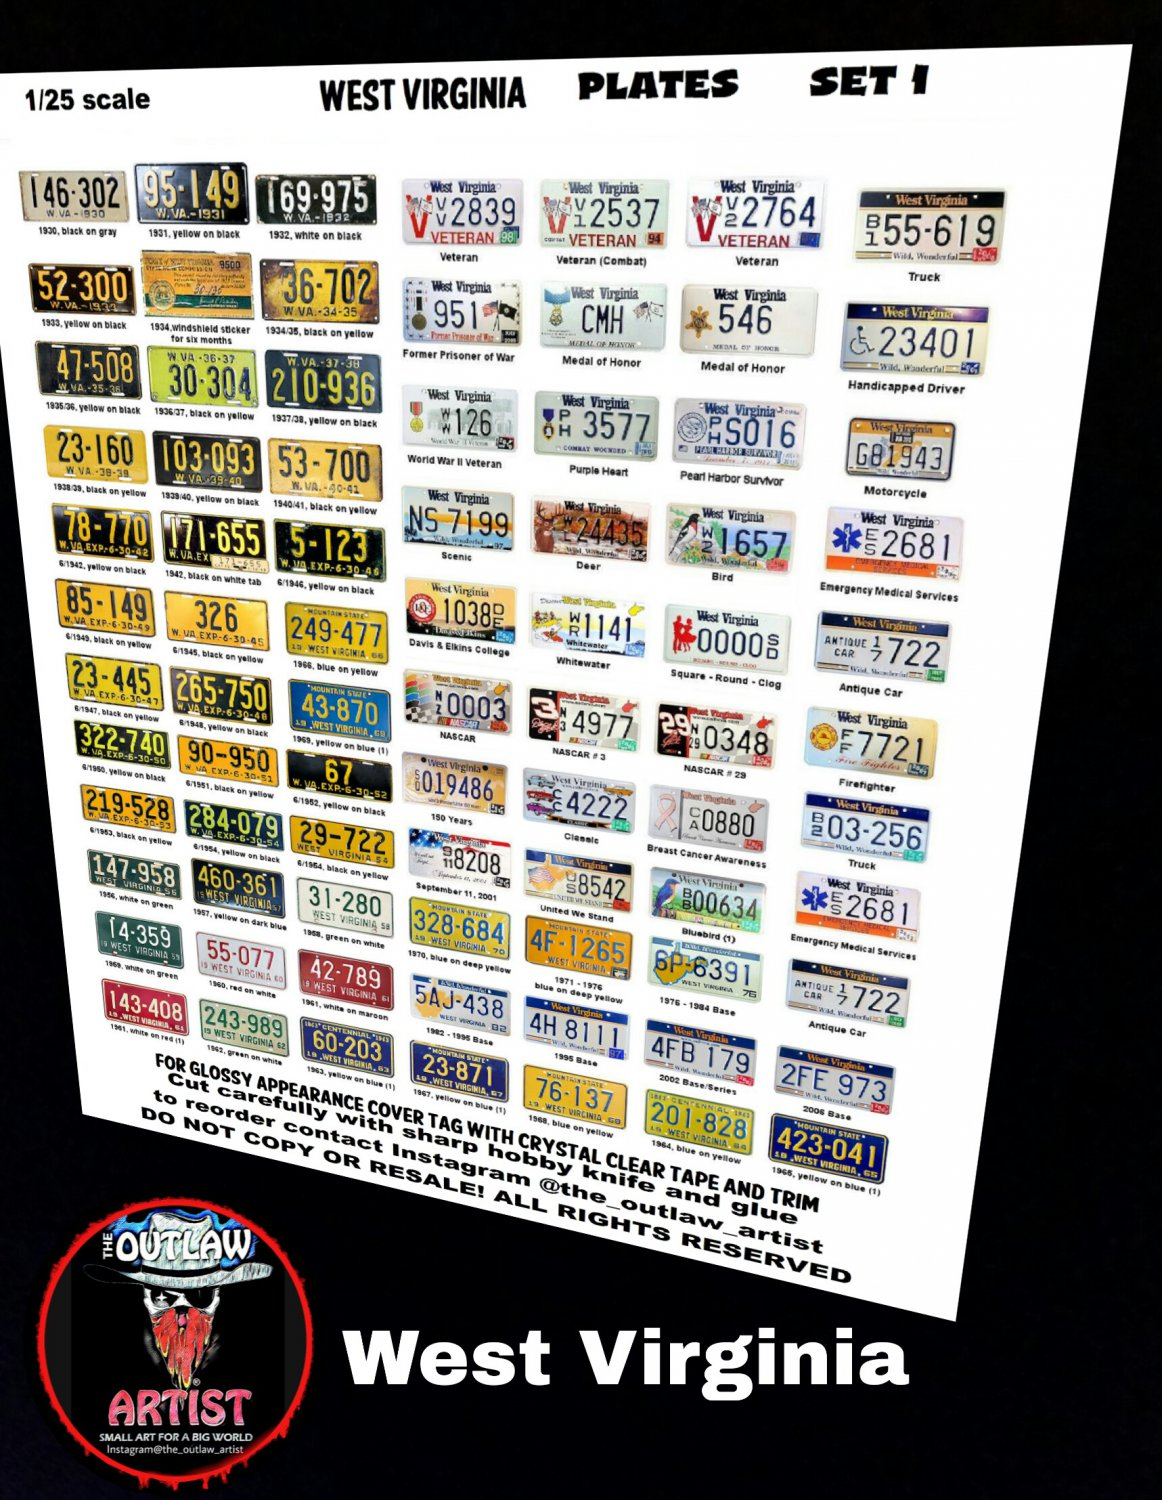 WEST VIRGINIA License Plate Set 1/24 1/25 Scale